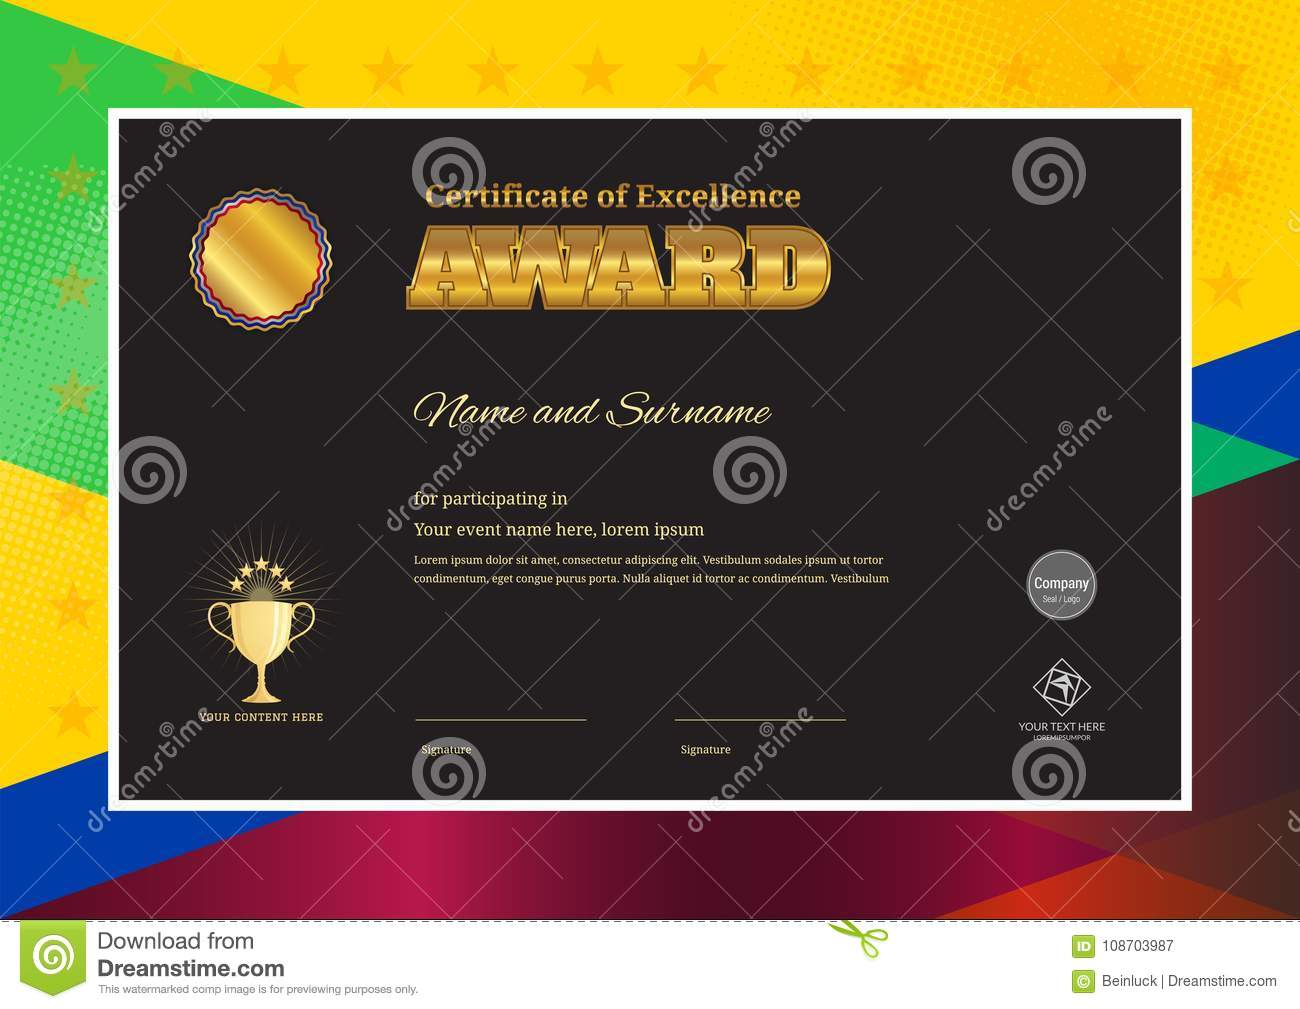 green certificate of completion template or sample blank background ...